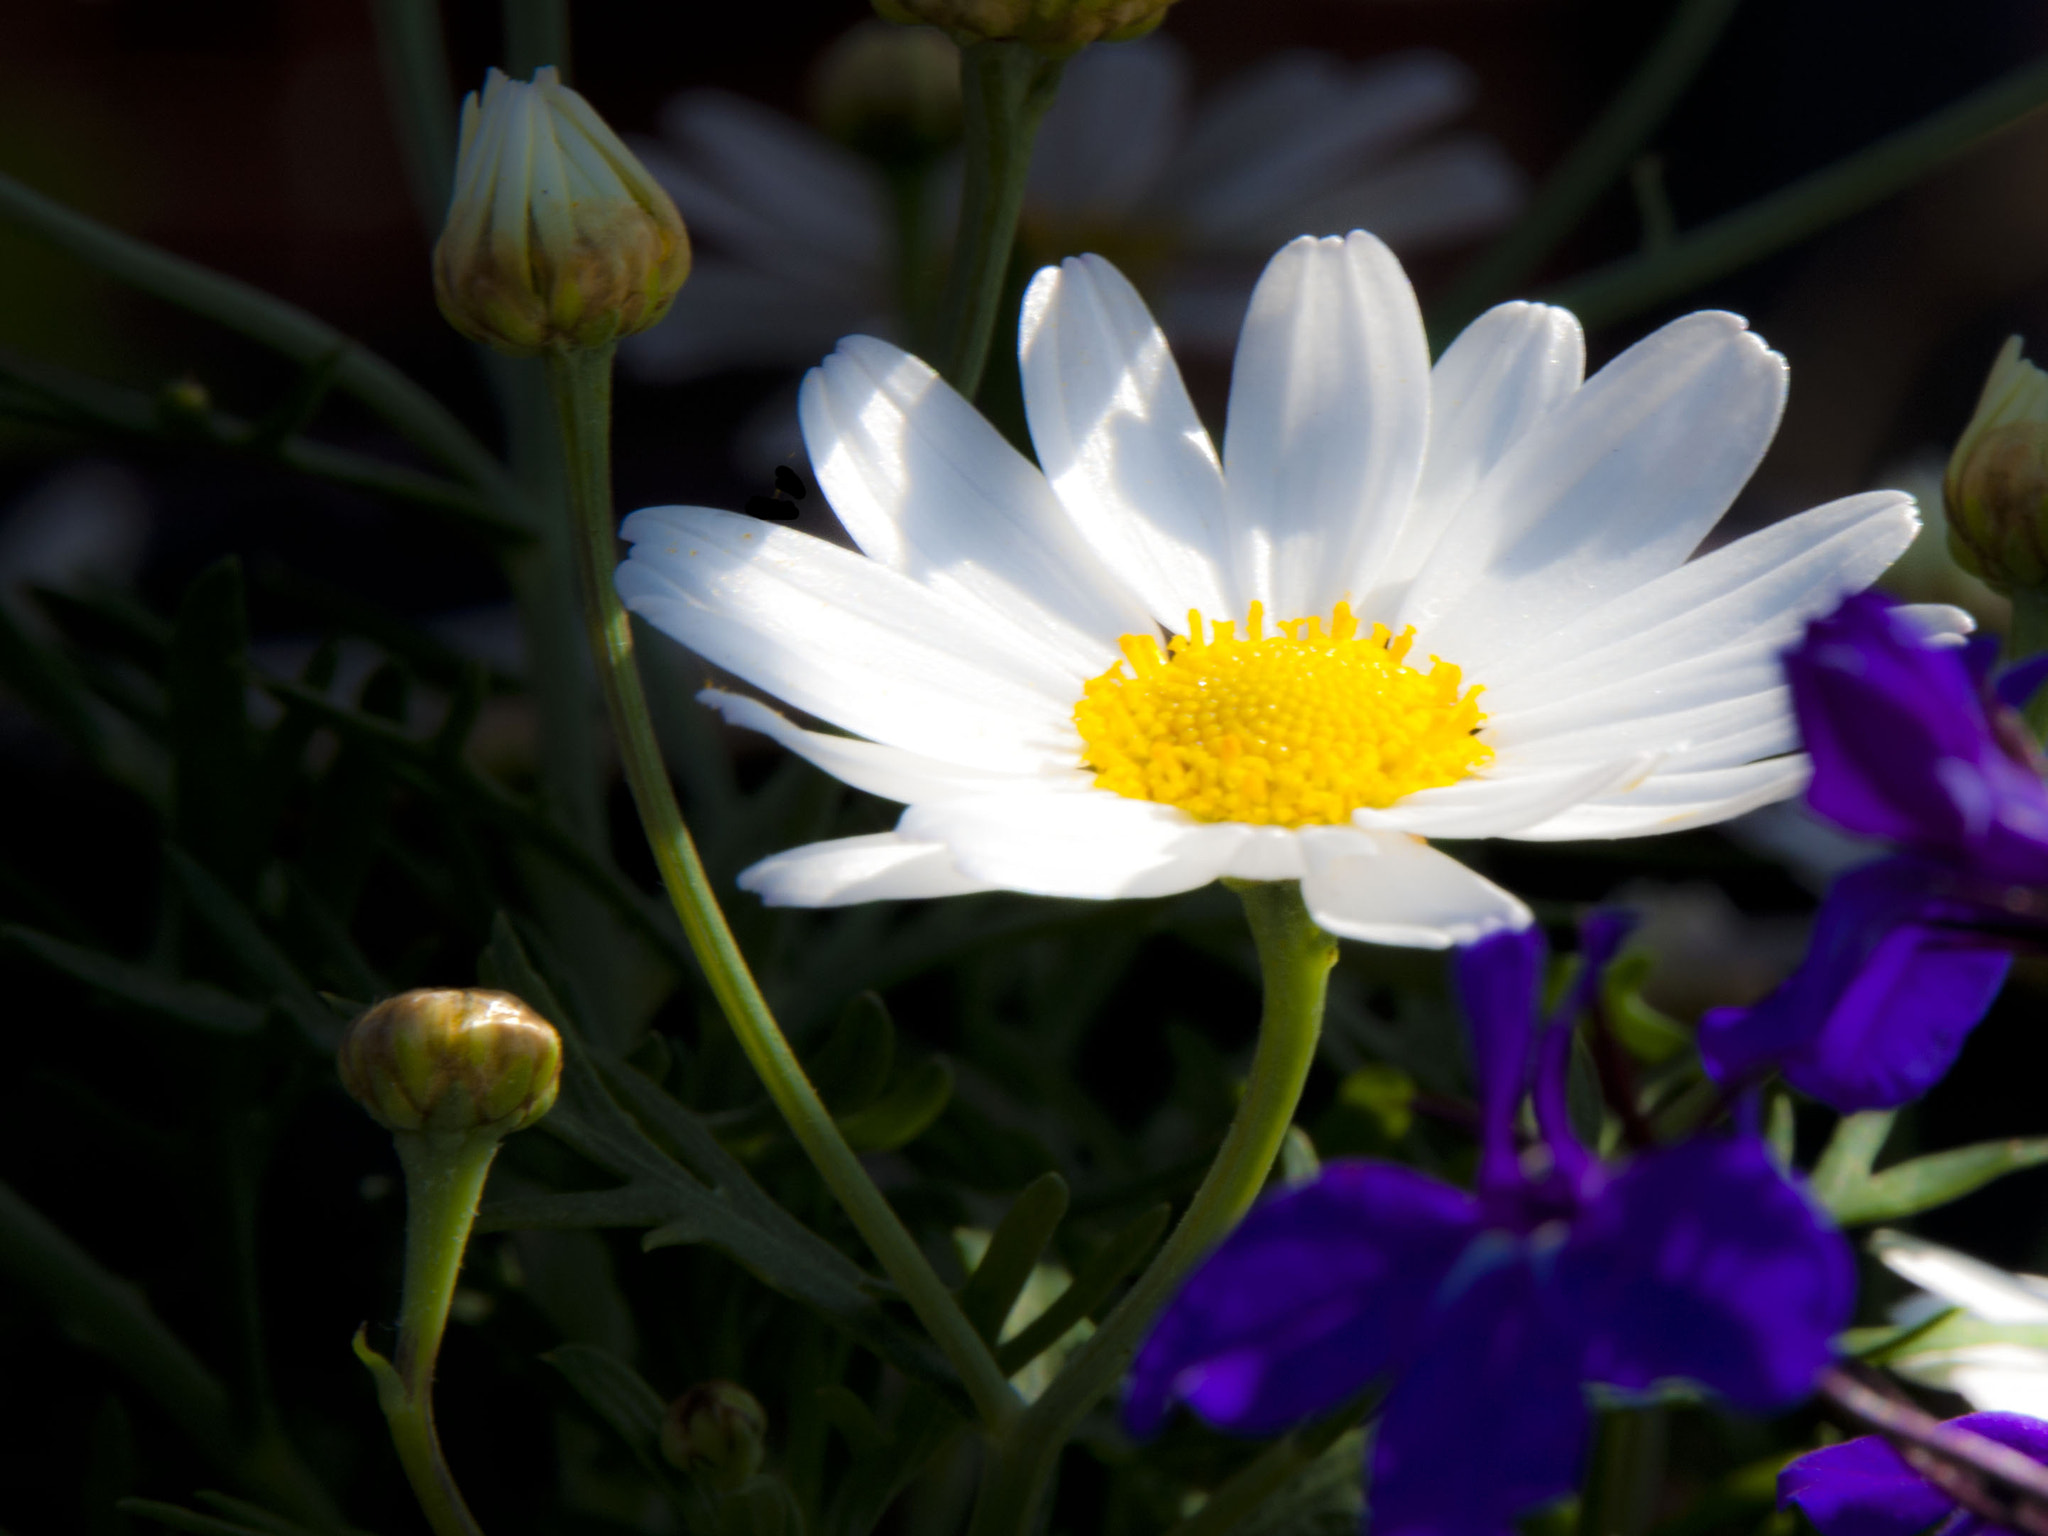 Photograph daisy by Leila Raymond on 500px